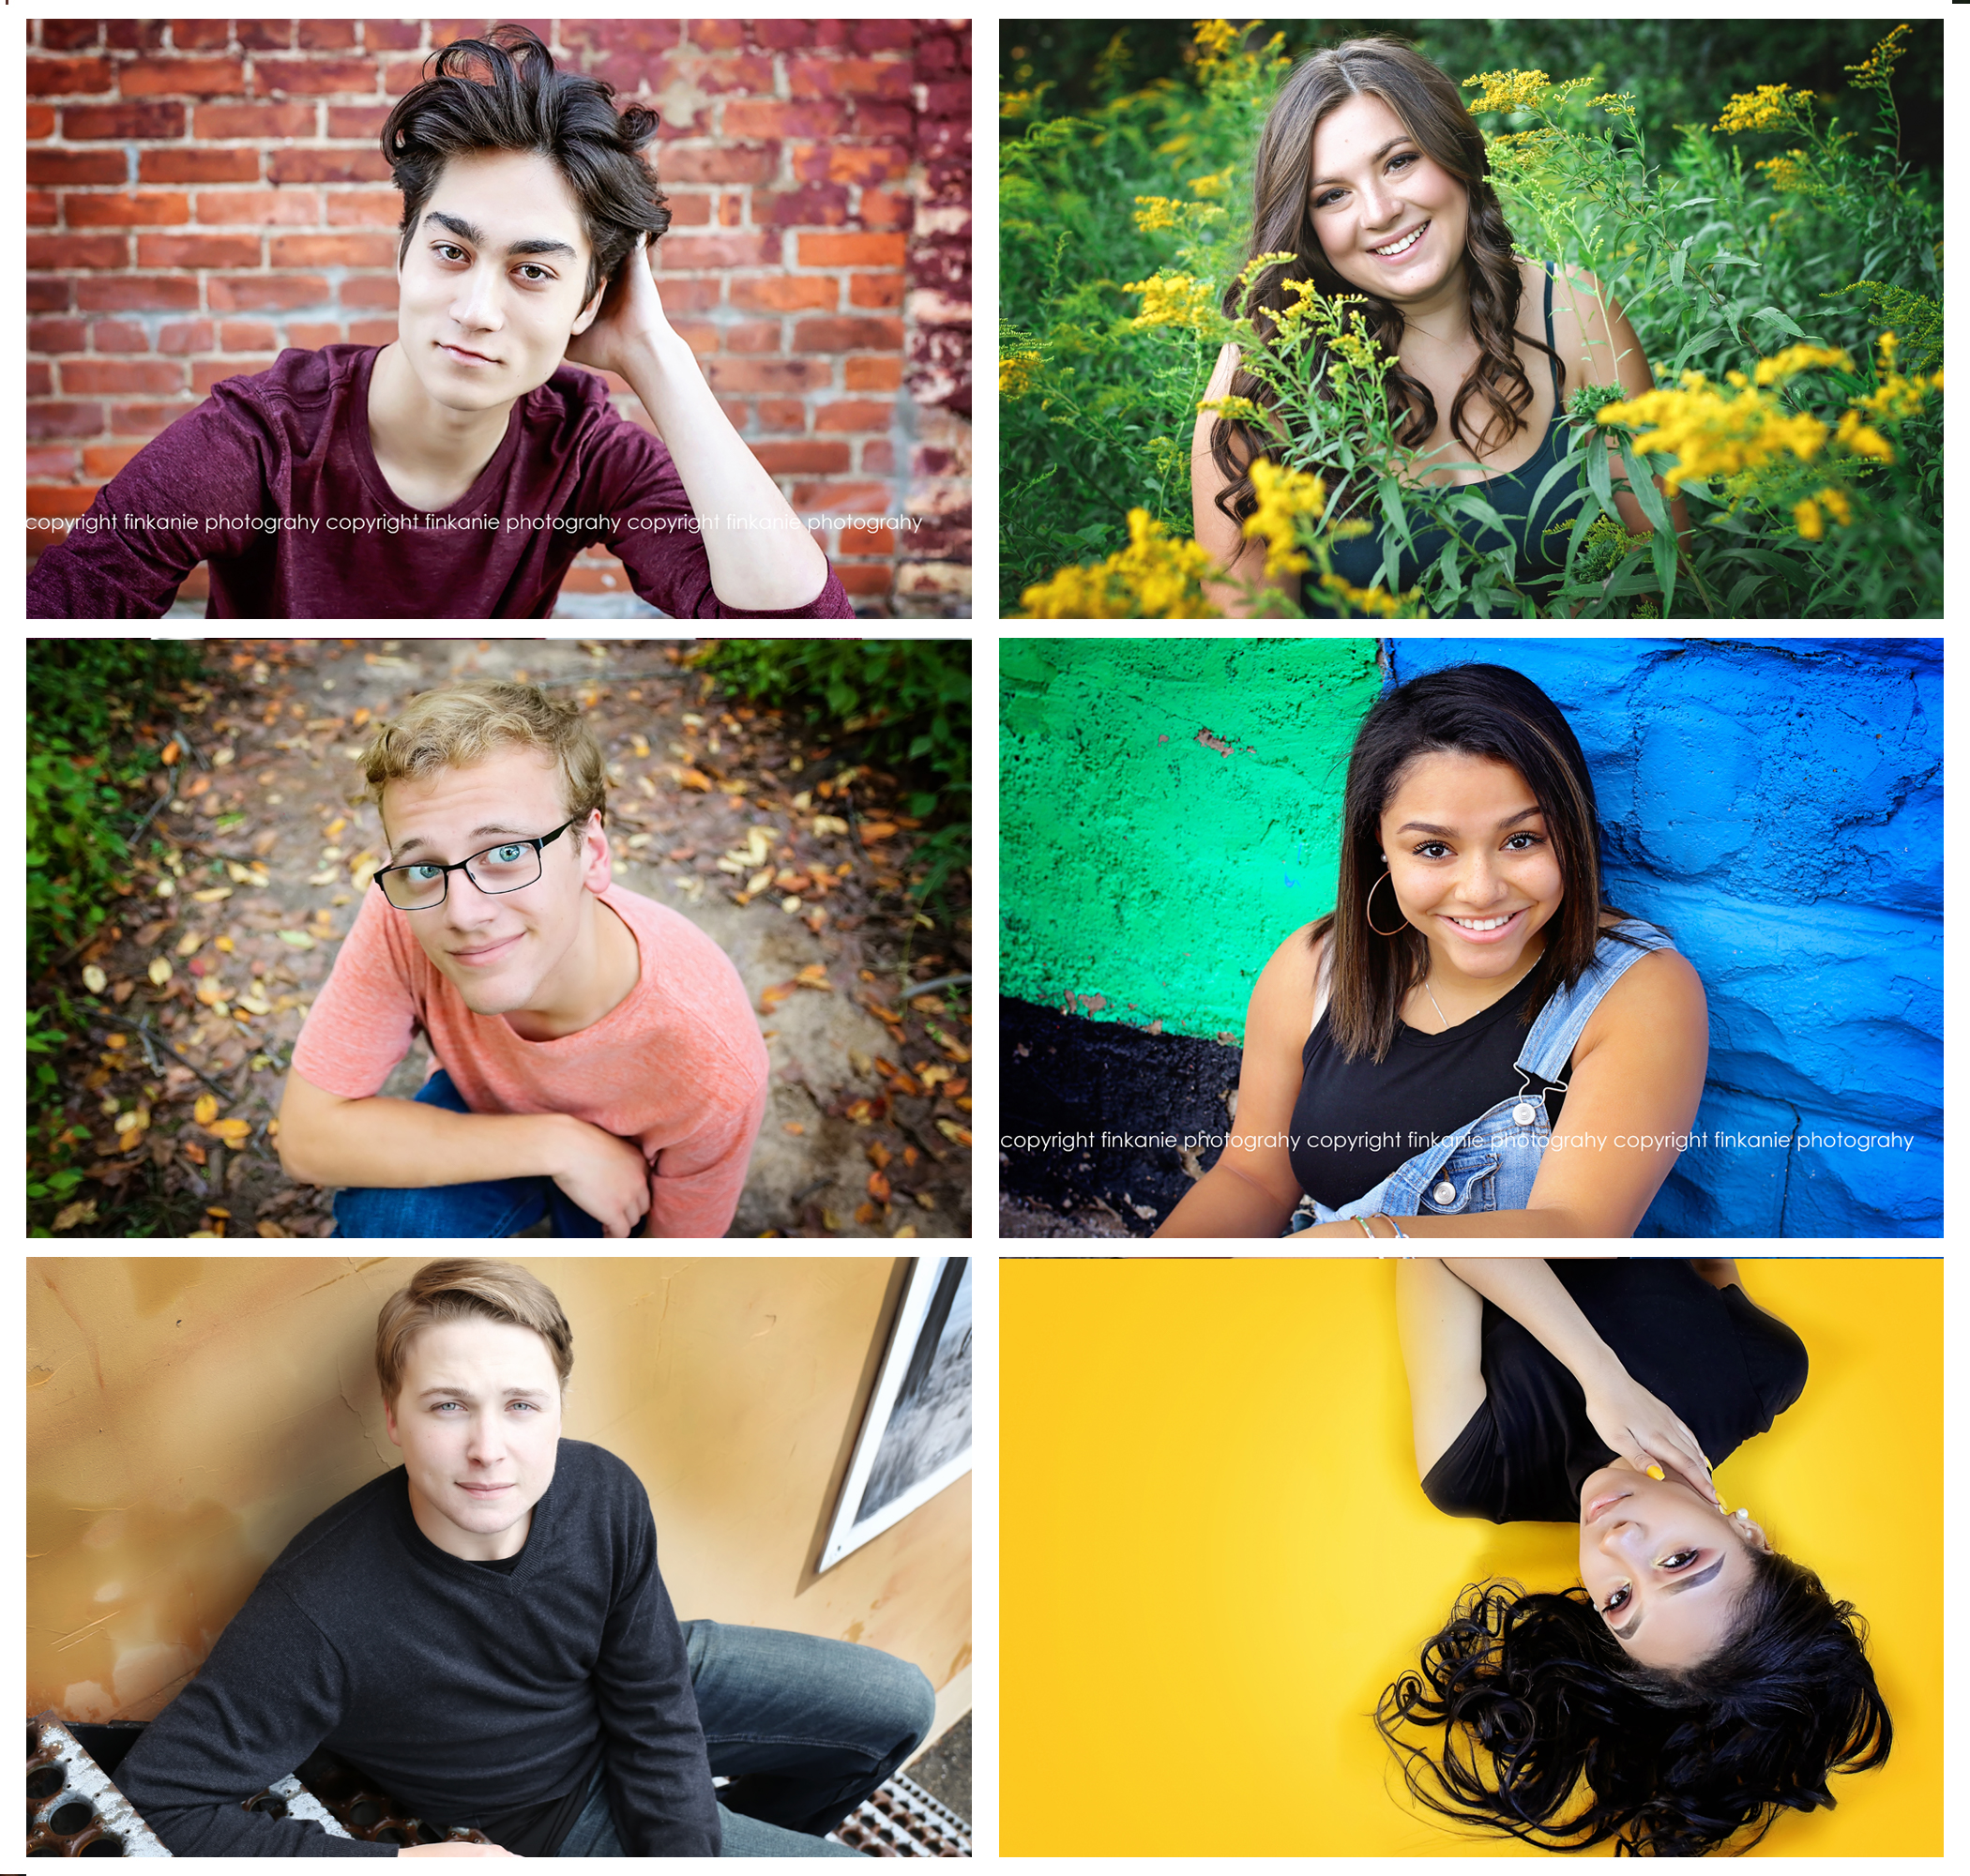 Senior Experience - Up to two locations. Unlimited outfit changes. Friends and pets welcome! Studio sessions available. Add-on a montage session for $95 session fee to showcase your sports, band, singing, dance, or other talents!·$175 Session Fee·$500 Print Credit·90-minute average session time